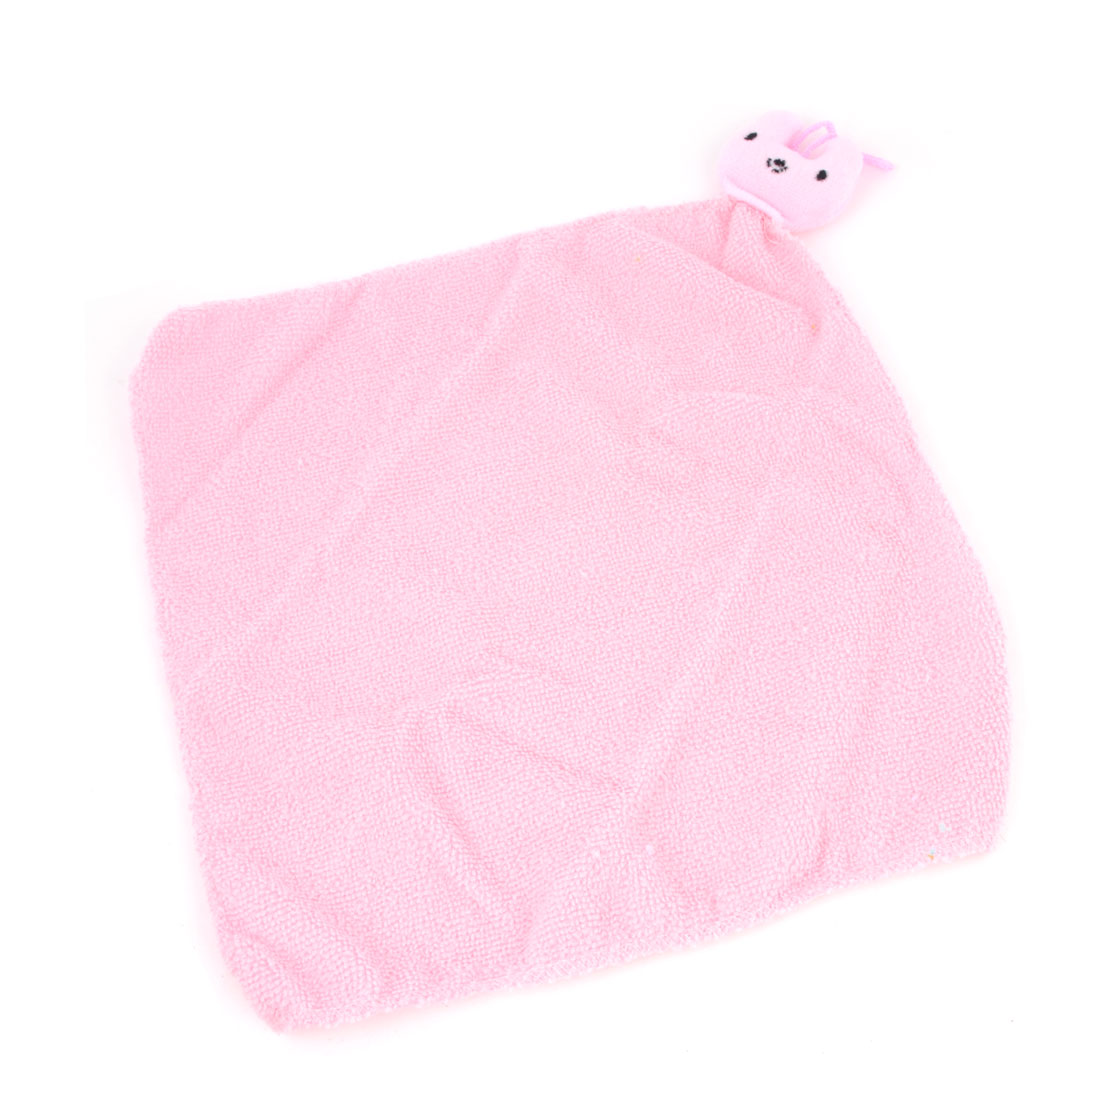 Home Pink Rabbit Decor Square Water Absorption Washcloth Soft Hanging Hand Face Cleaning Towel Cloth